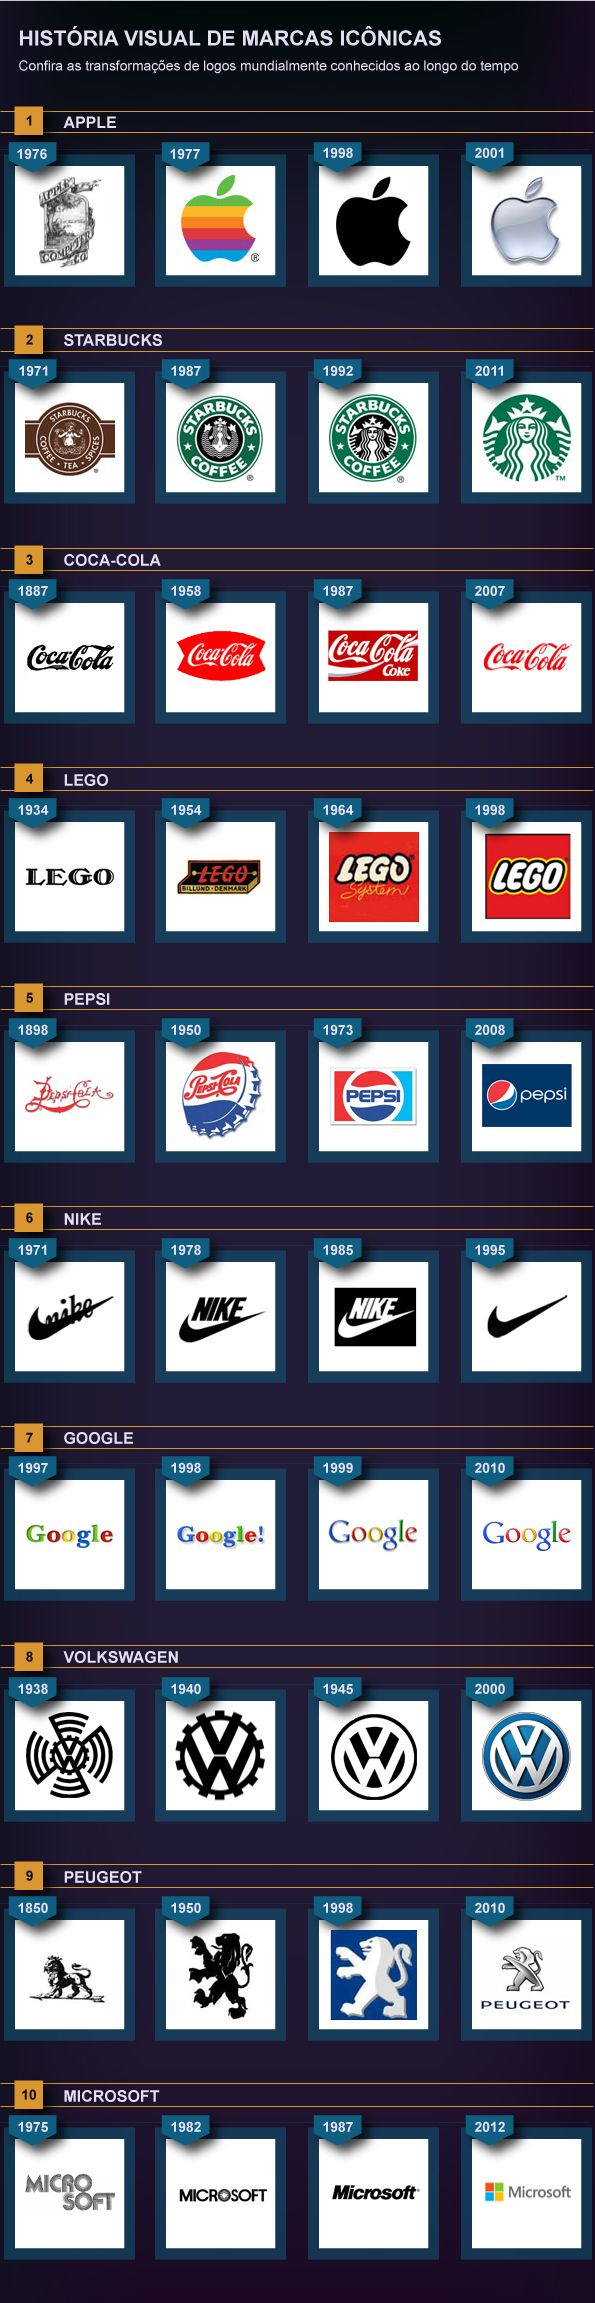 the evolution of 10 famous logos P.S. look at the BMW first one and what does it look like to you? haha